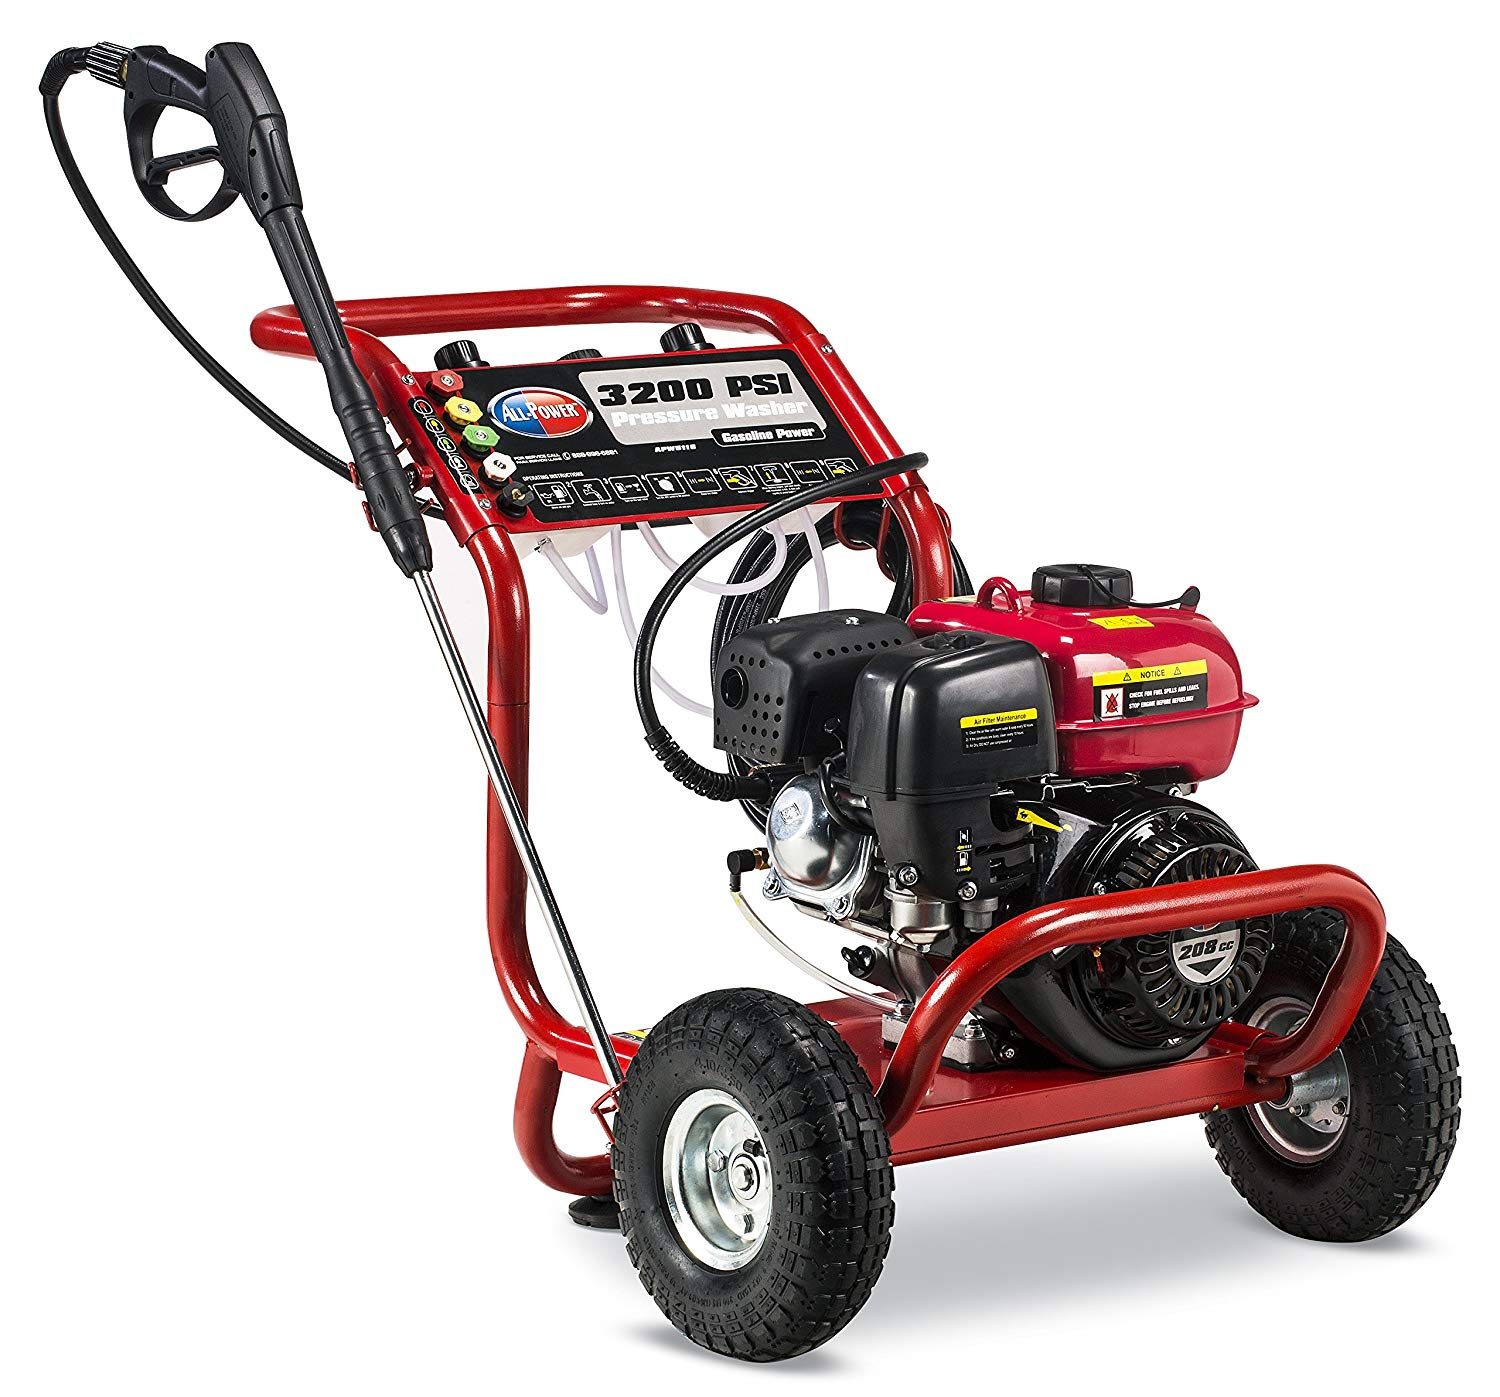 3200 PSI 2.6 GPM Gas Powered Pressure Washer CARB & EPA Approved